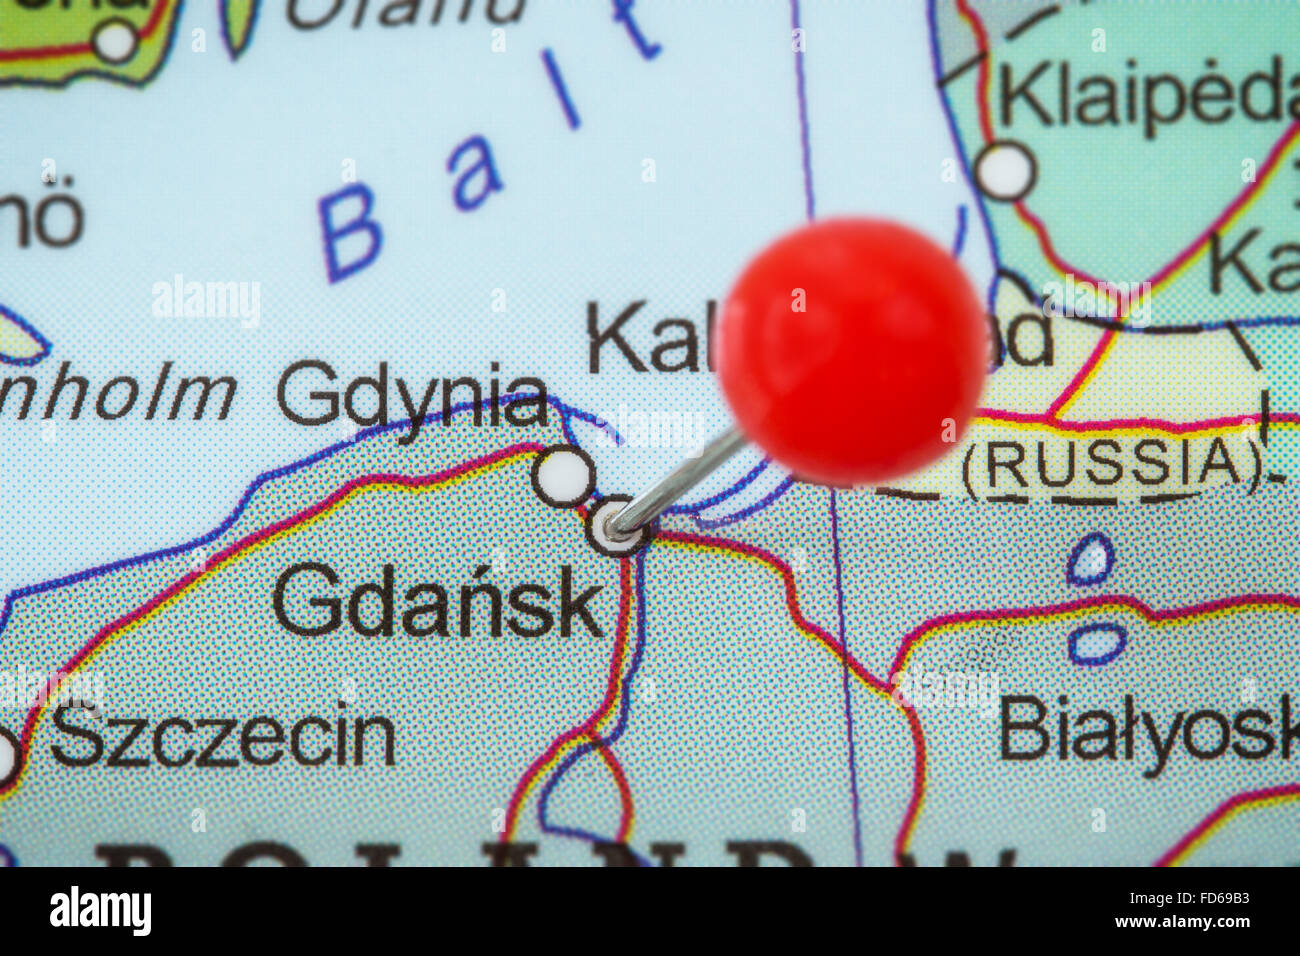 Gdansk Poland Map Close up of a red pushpin in a map of Gdansk, Poland Stock Photo